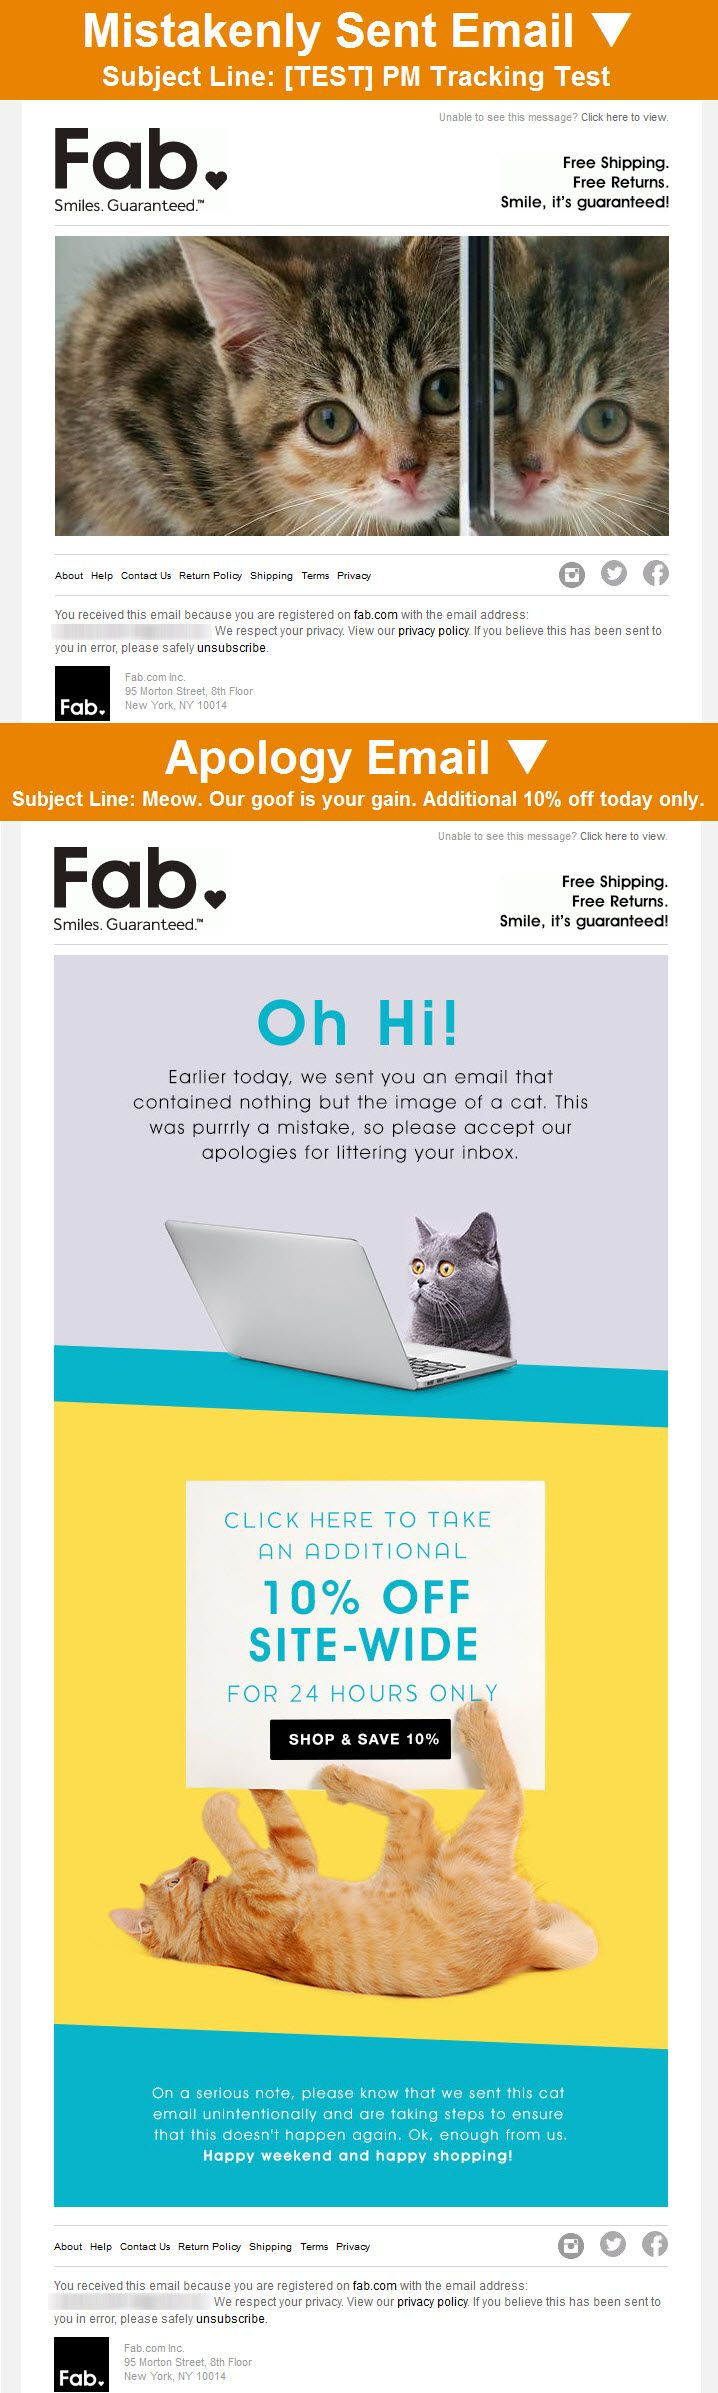 Fab >> sent 8/3/14 >> Meow. Our goof is your gain. Additional 10% off today only. >> This apology email from Fab was a quick and smart response to a confusing, cat-filled test email sent in error earlier in the day. But bouncing back from the mistake using the brand's sense of humor and sharing an unexpected discount, they used this opportunity to earn some extra smiles—and business. —Andrea Smith, Design Lead, Content Marketing & Research, Salesforce Marketing Cloud